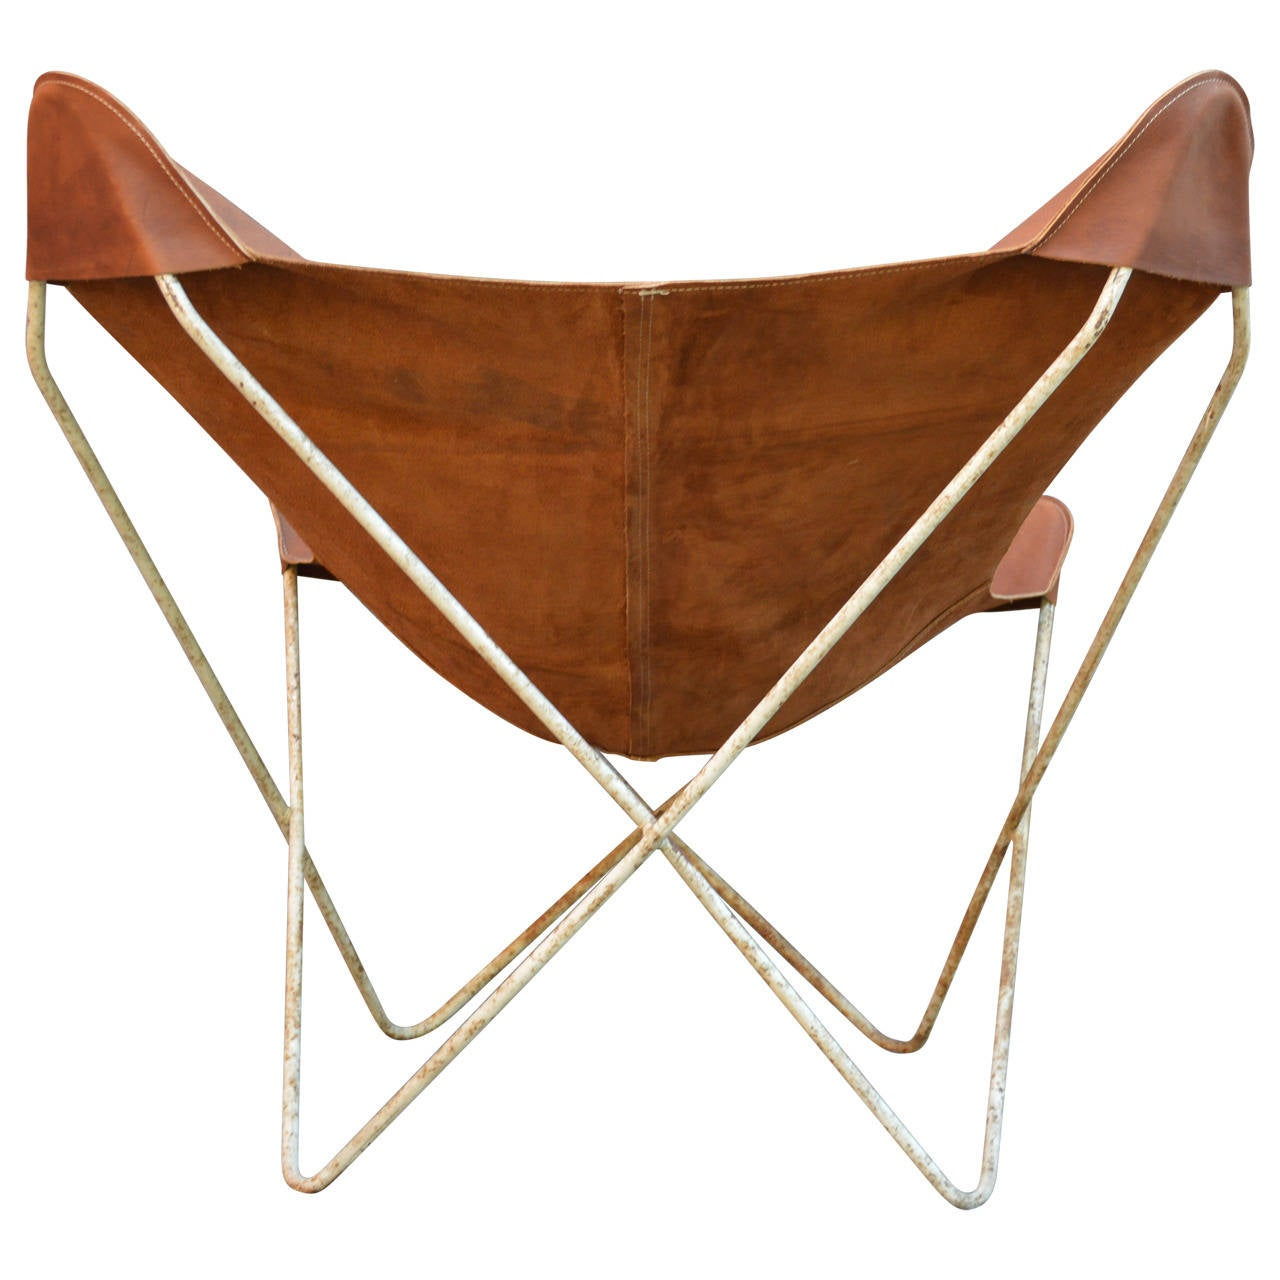 20th Century Rustic Butterfly Chair, Hardoy